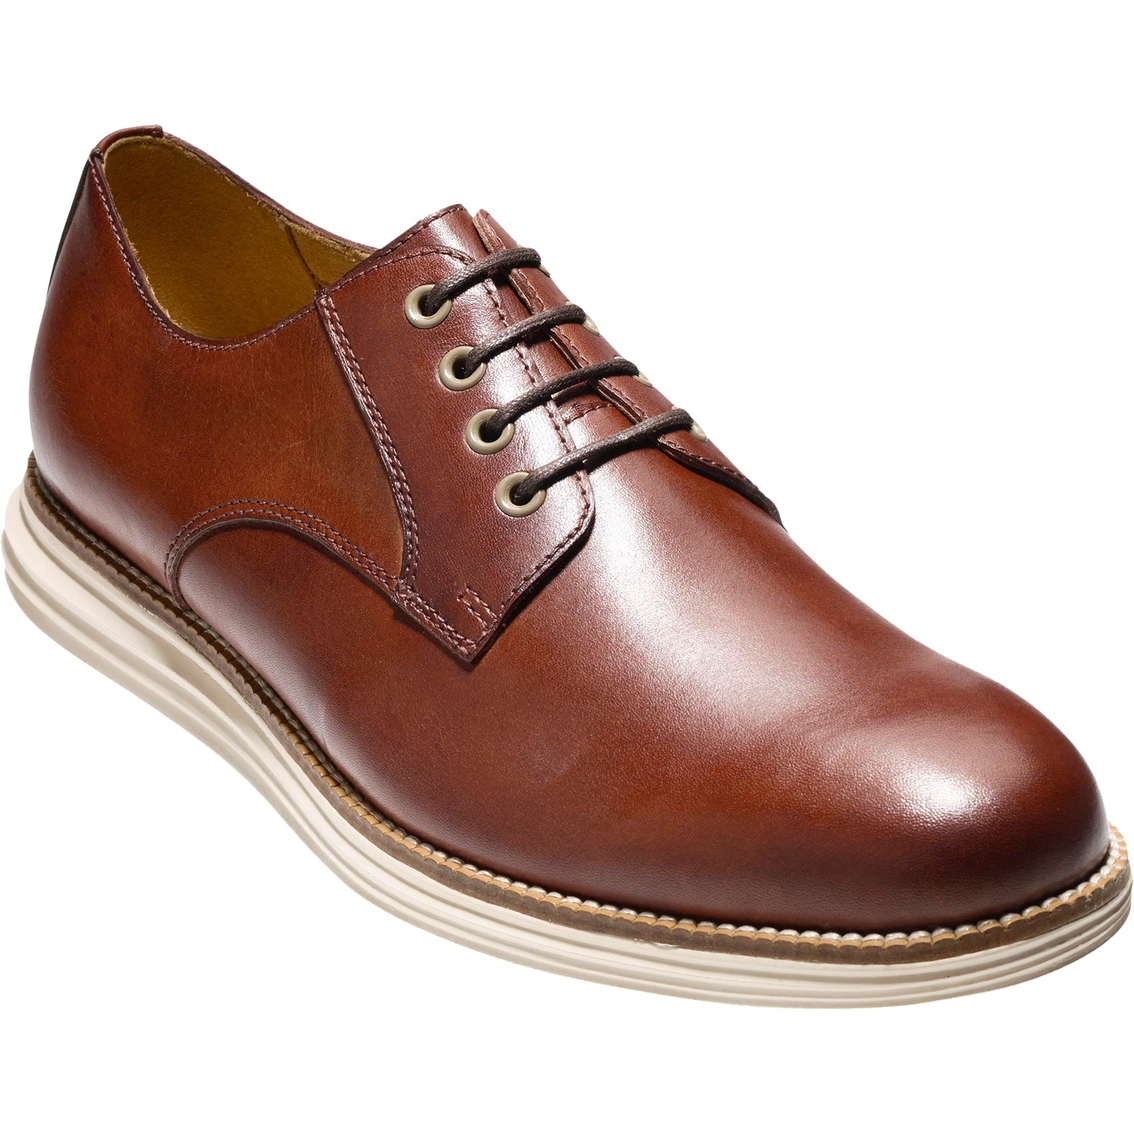 Cole Haan Classic Grand Oxford Shoes